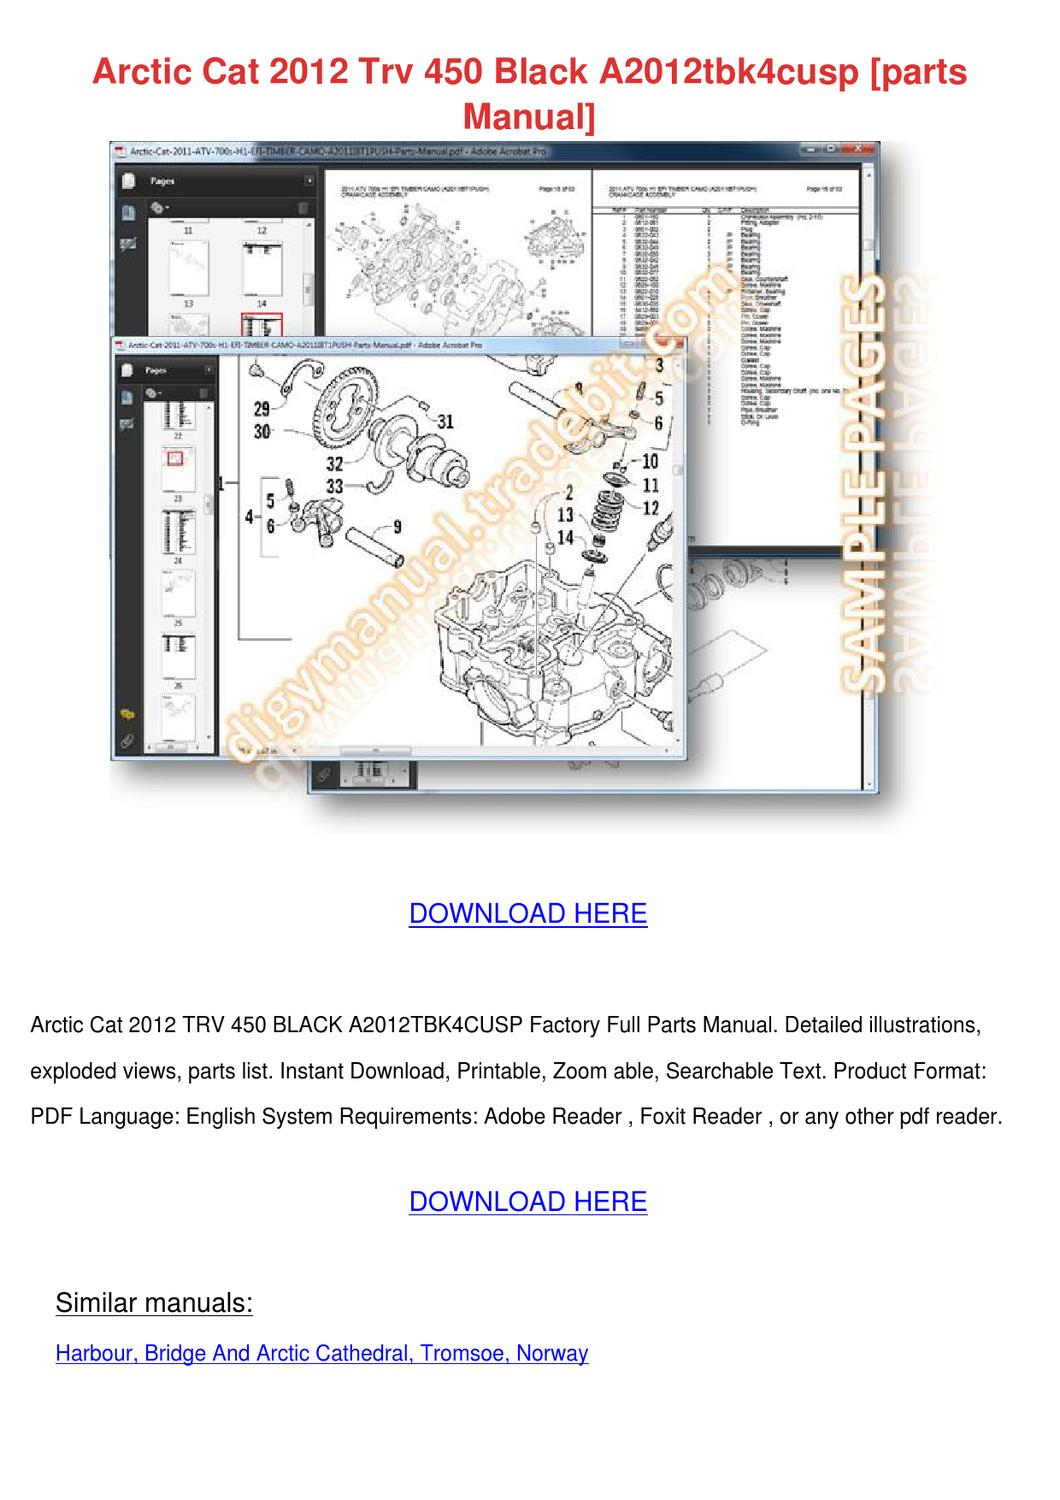 Arctic Cat 2012 Trv 450 Black A2012tbk4cusp P By Catalinabeckwith Thundercat Snowmobile Wiring Diagram Issuu